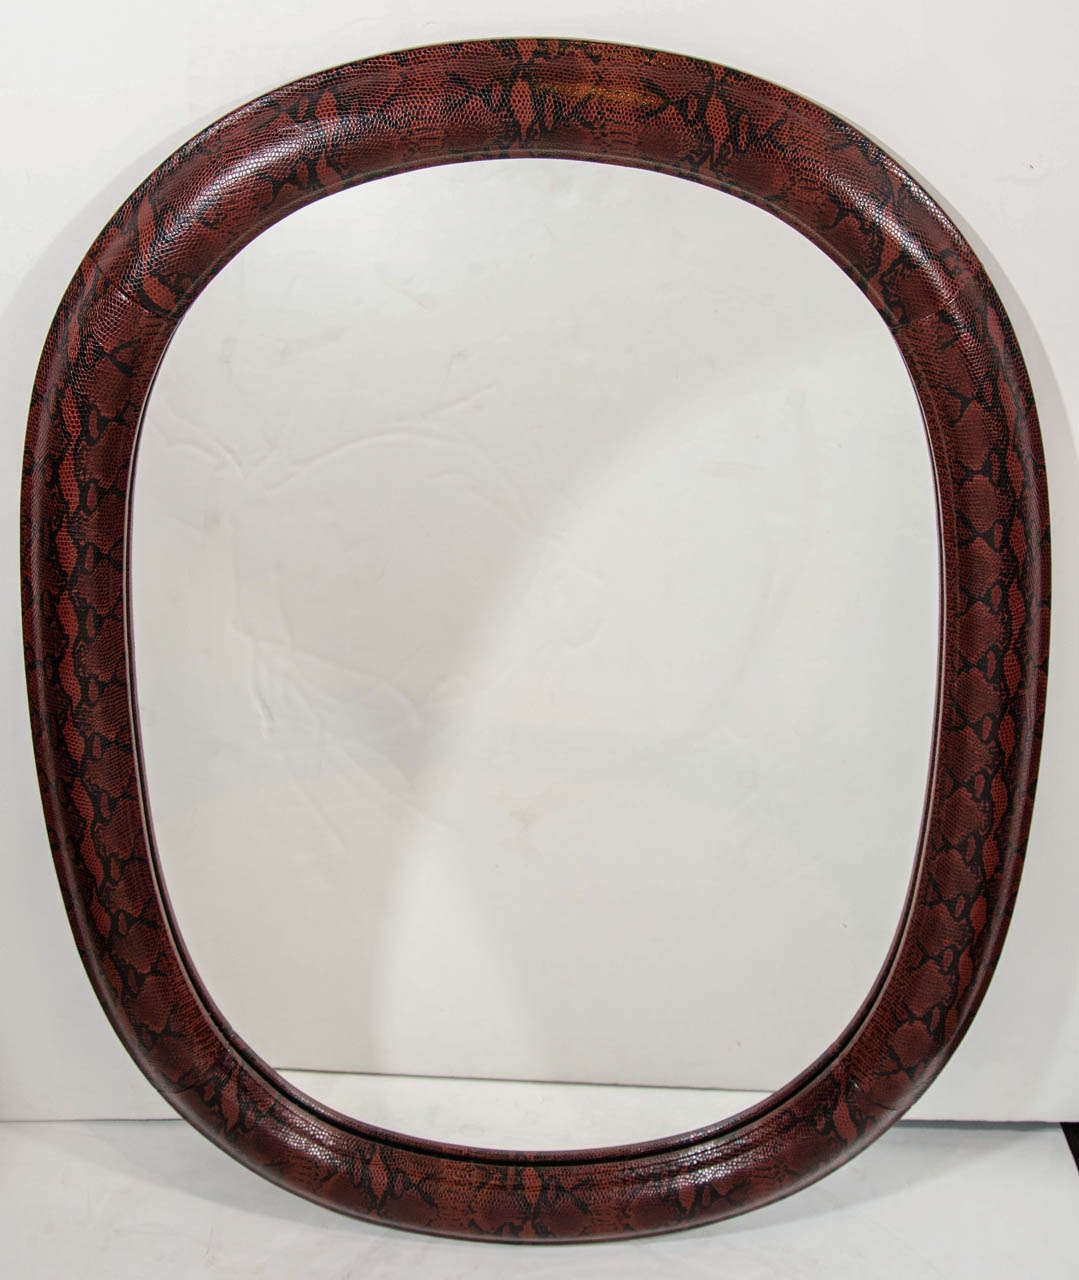 American Mid-Century Modern Red Snakeskin Mirror in Embossed Leather For Sale